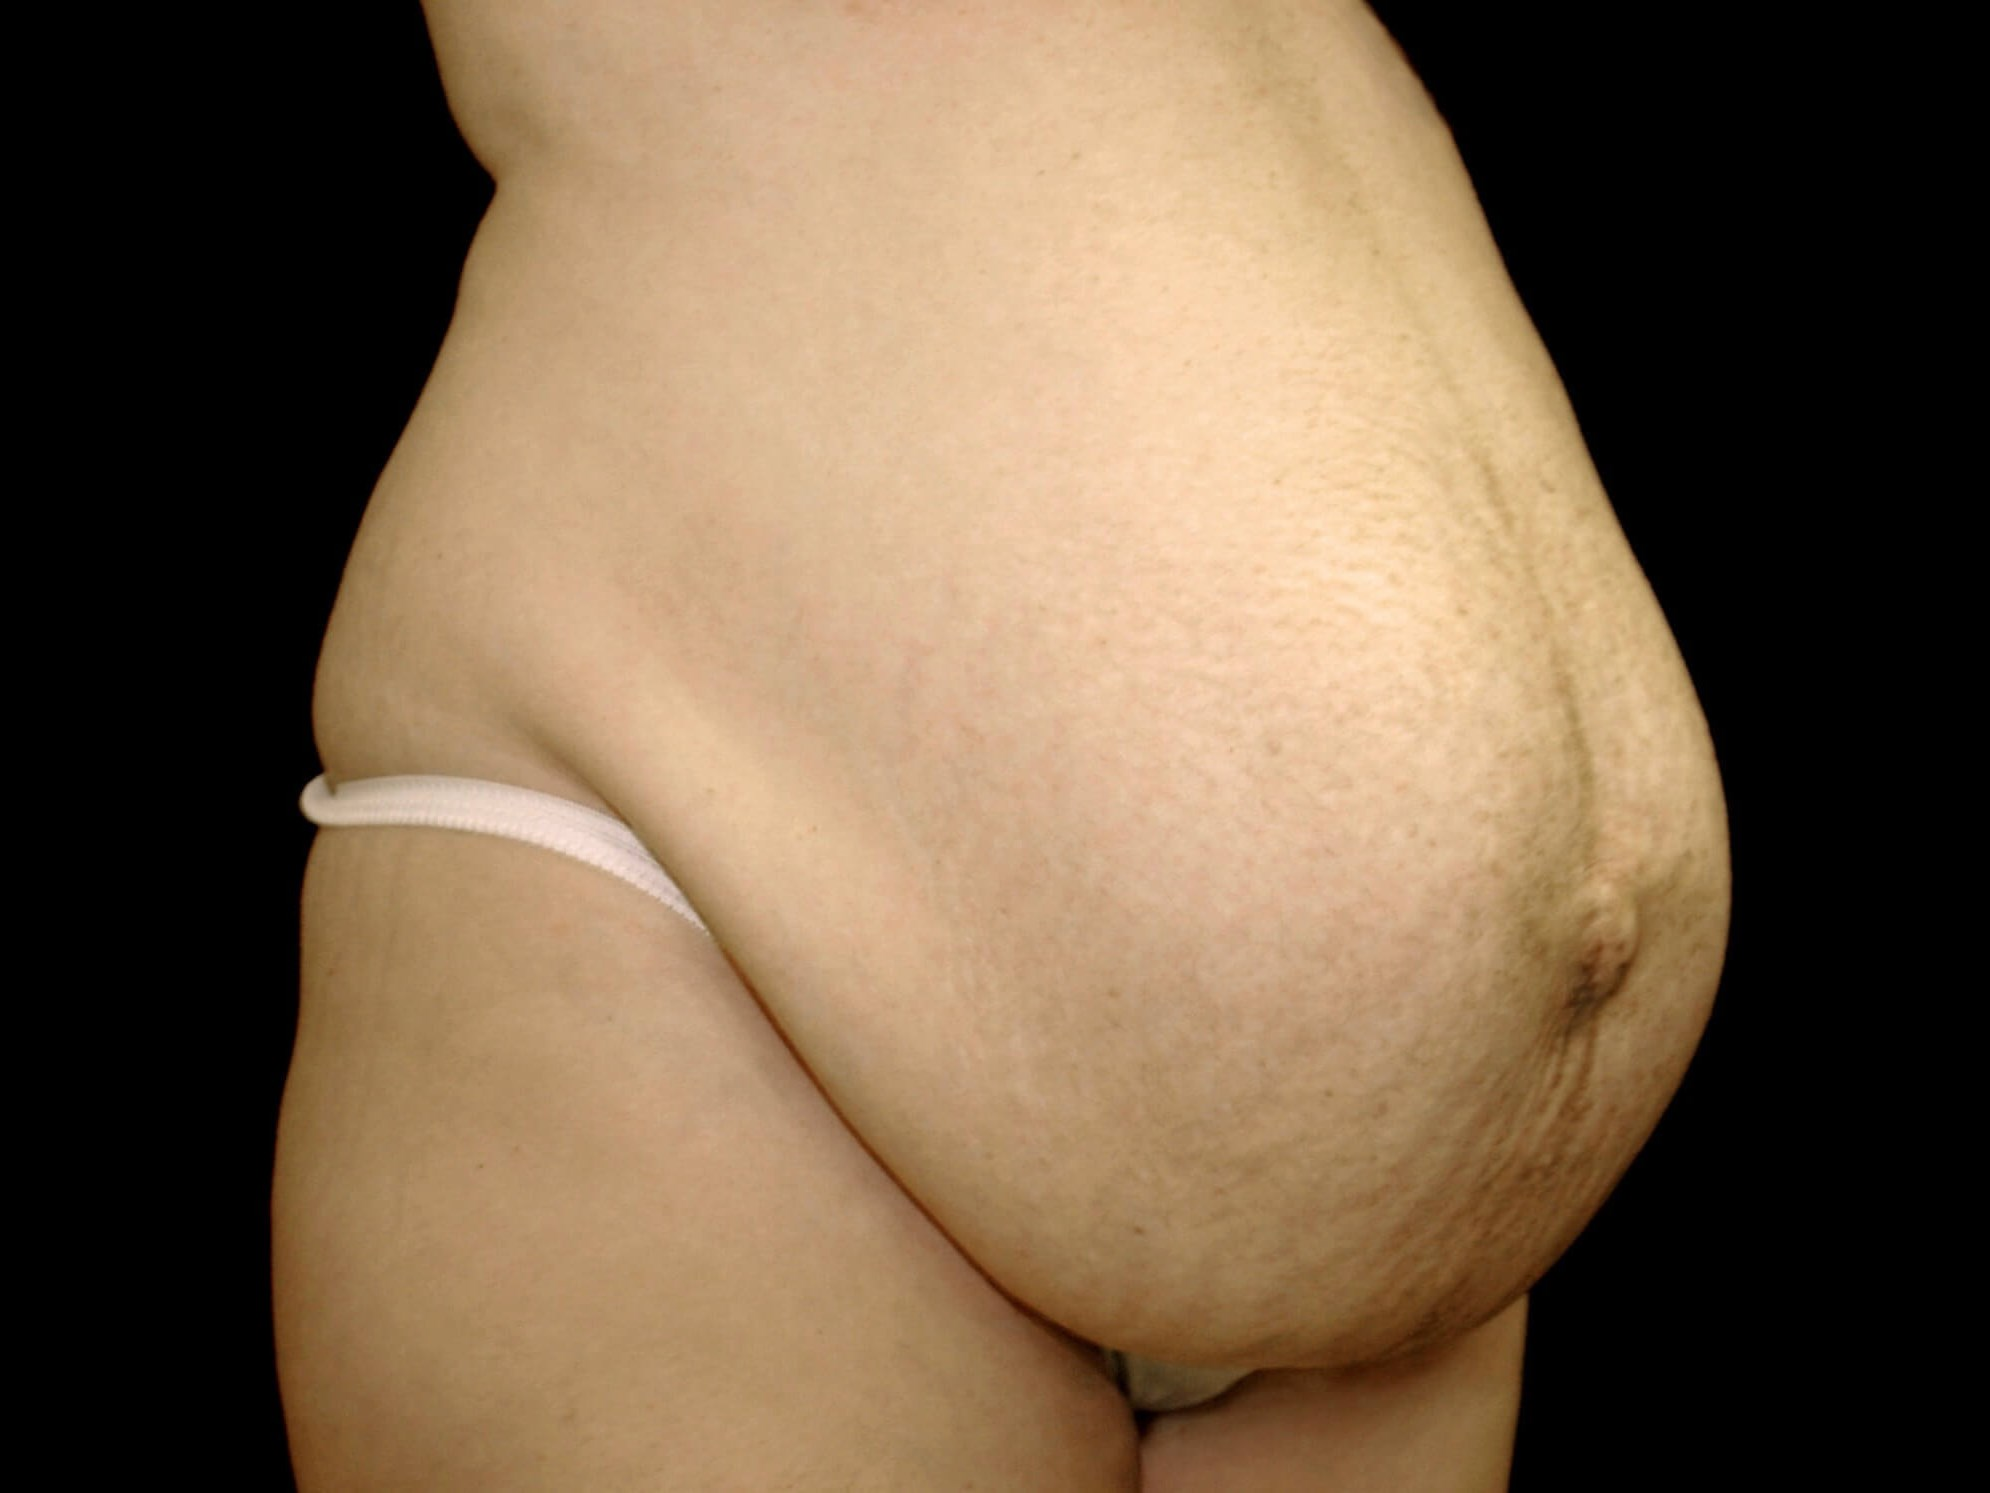 FRISCO, TEXAS WOMAN HAS TUMMY TUCK PROCEDURE AND BELLY BUTTON RECONSTRUCTION